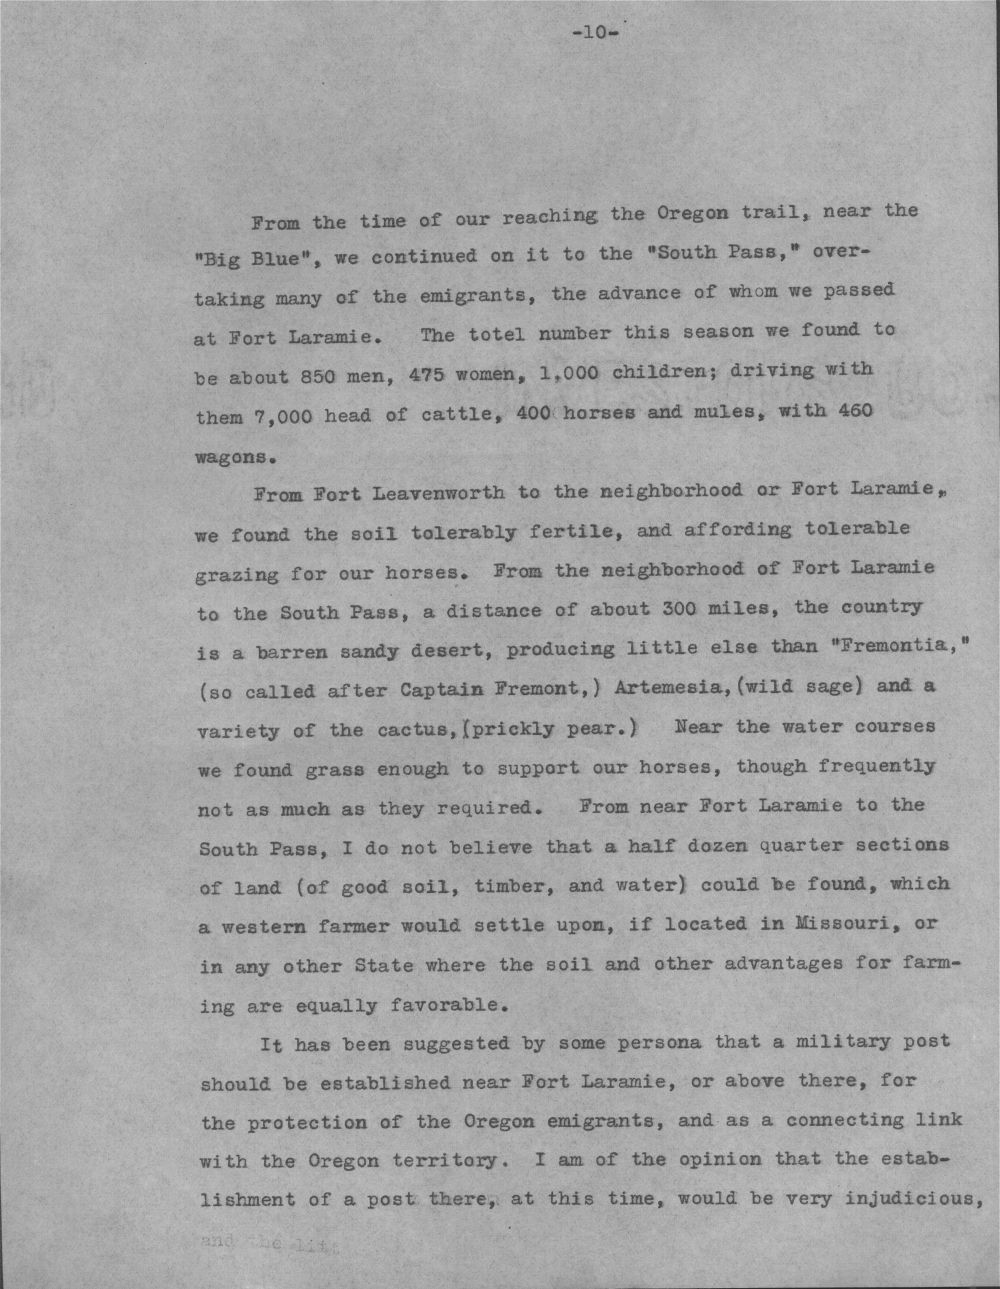 Report of a summer campaign to the Rocky Mountains, etc., in 1845 - 10